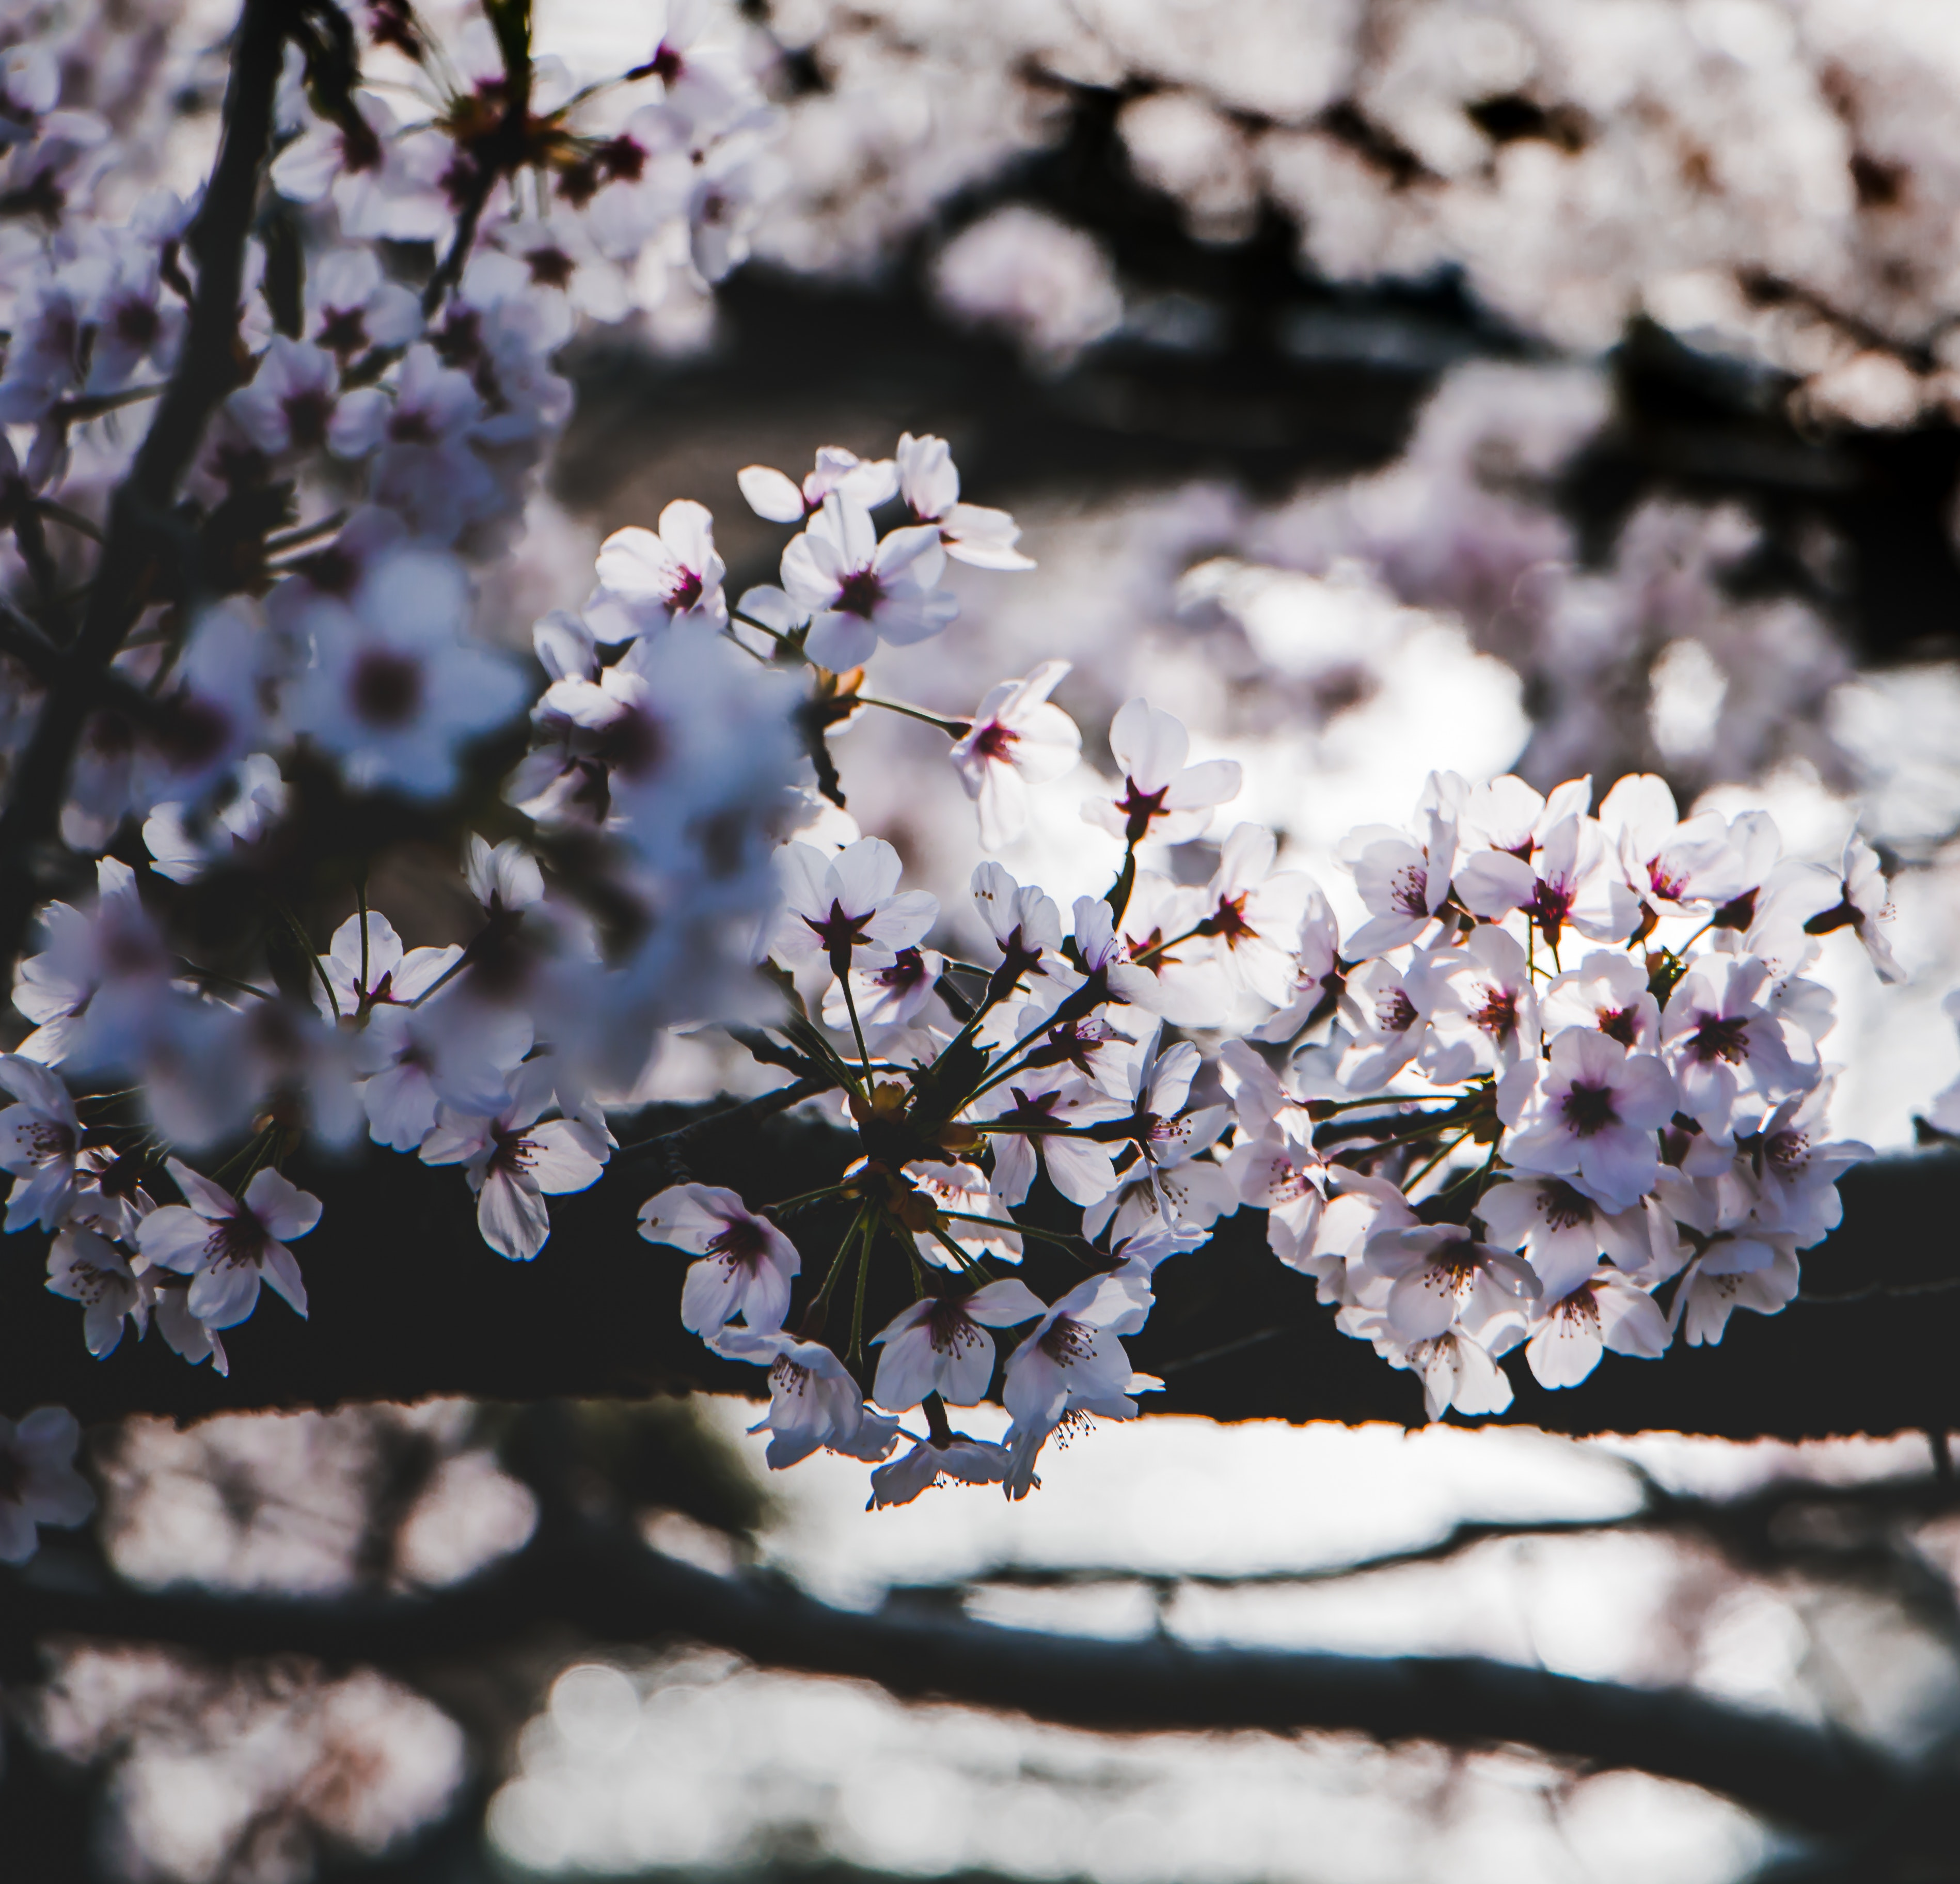 White flowering tree selective focus photography free stock photo free download mightylinksfo